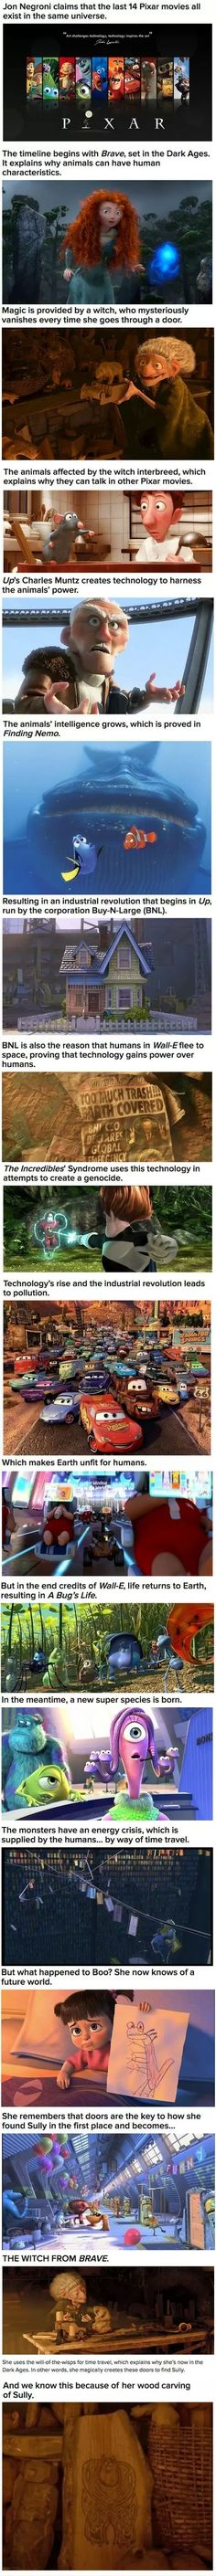 A theory of the Pixar universe.... Who the hell took the time to figure this out and actually make it logical...